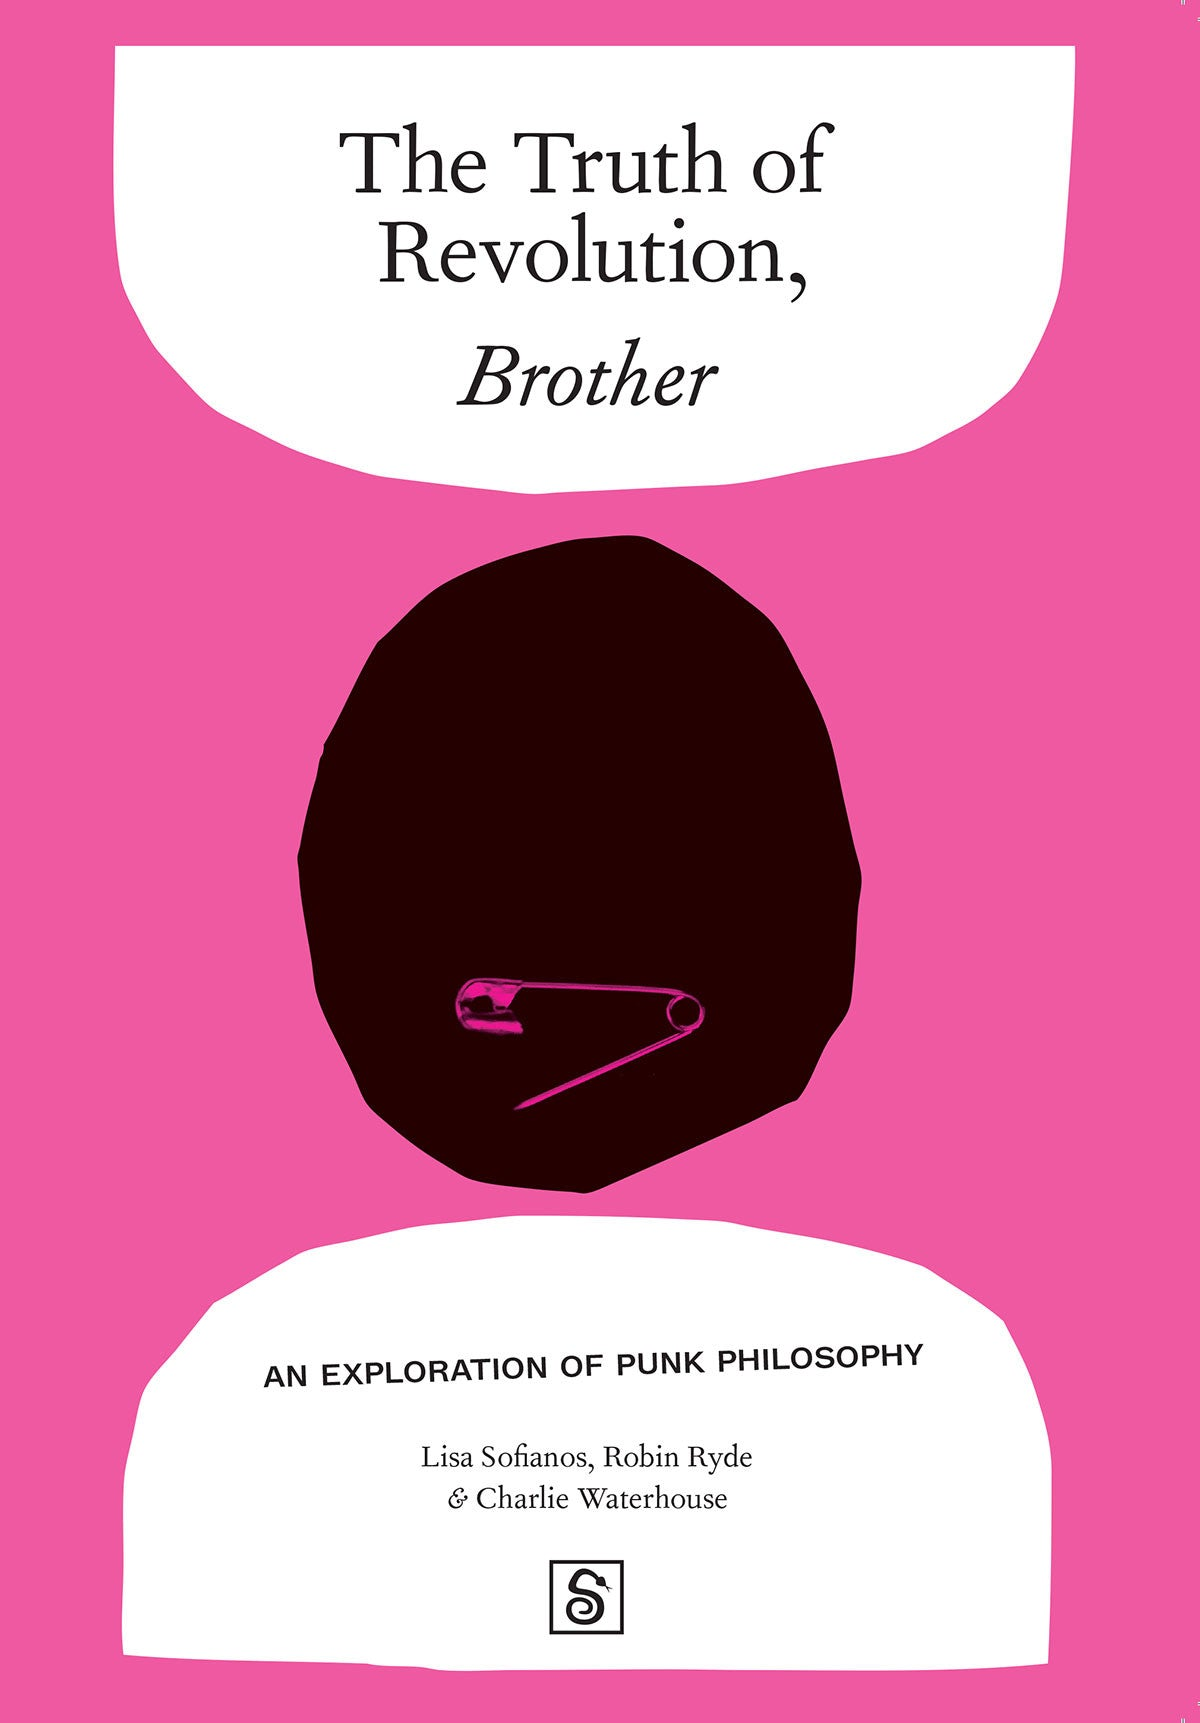 <i> The Truth of Revolution, Brother</i> Paperback edition